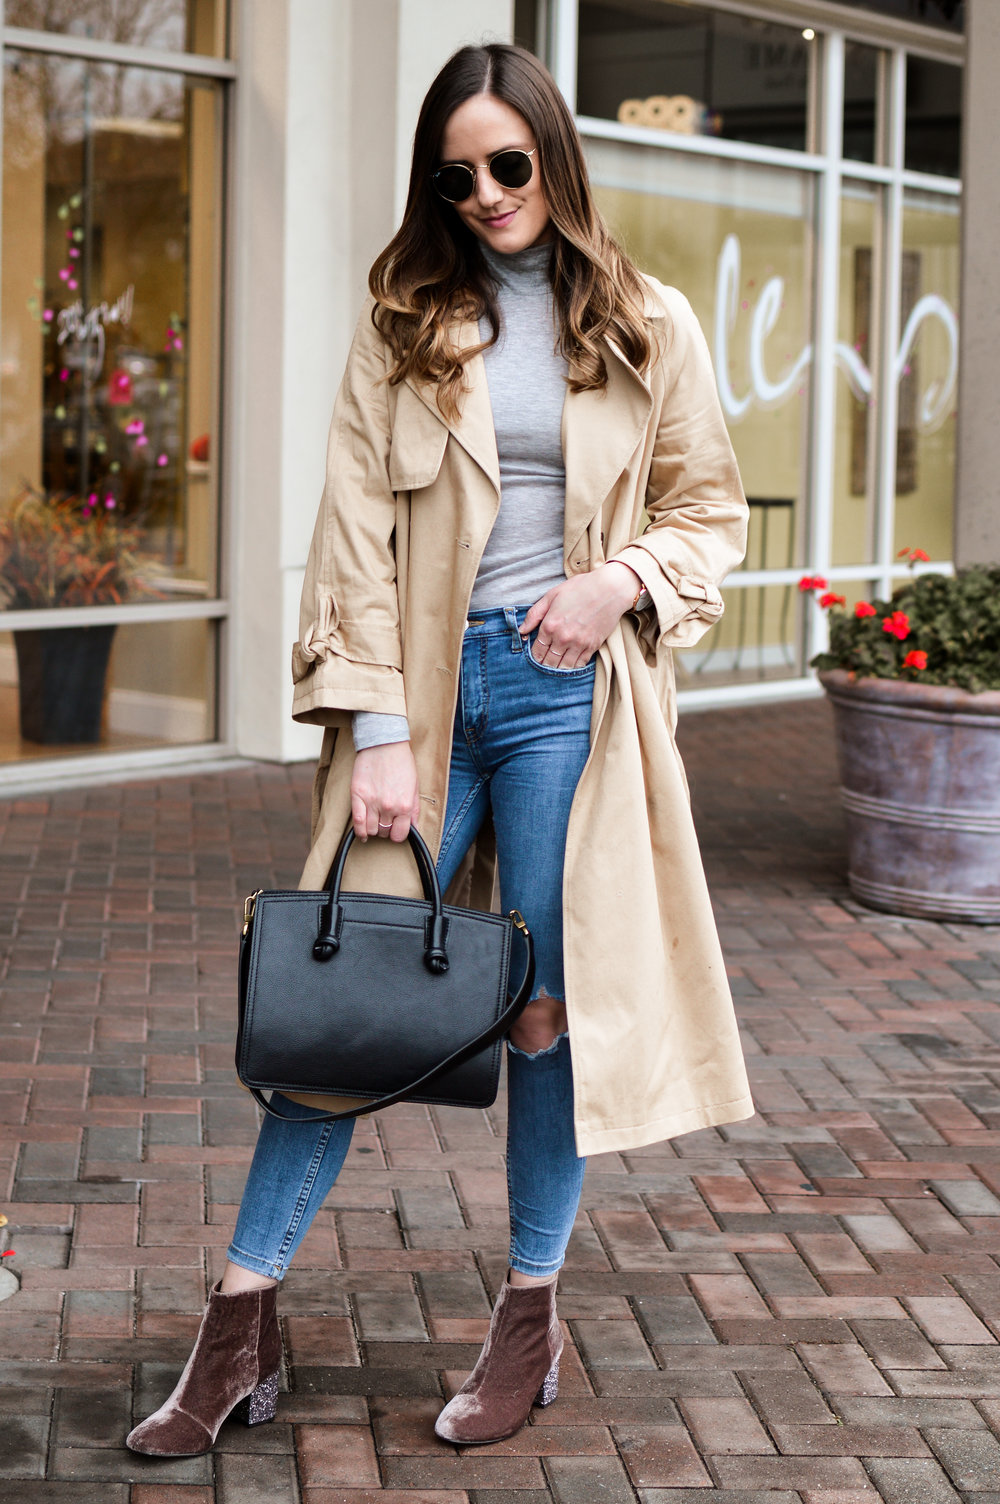 Shop the Look Below. Topshop Trench Coat | Topshop Top | Free People Jeans | Nordstrom Booties | Fossil Satchel c/o  | Ray-Ban Sunglasses